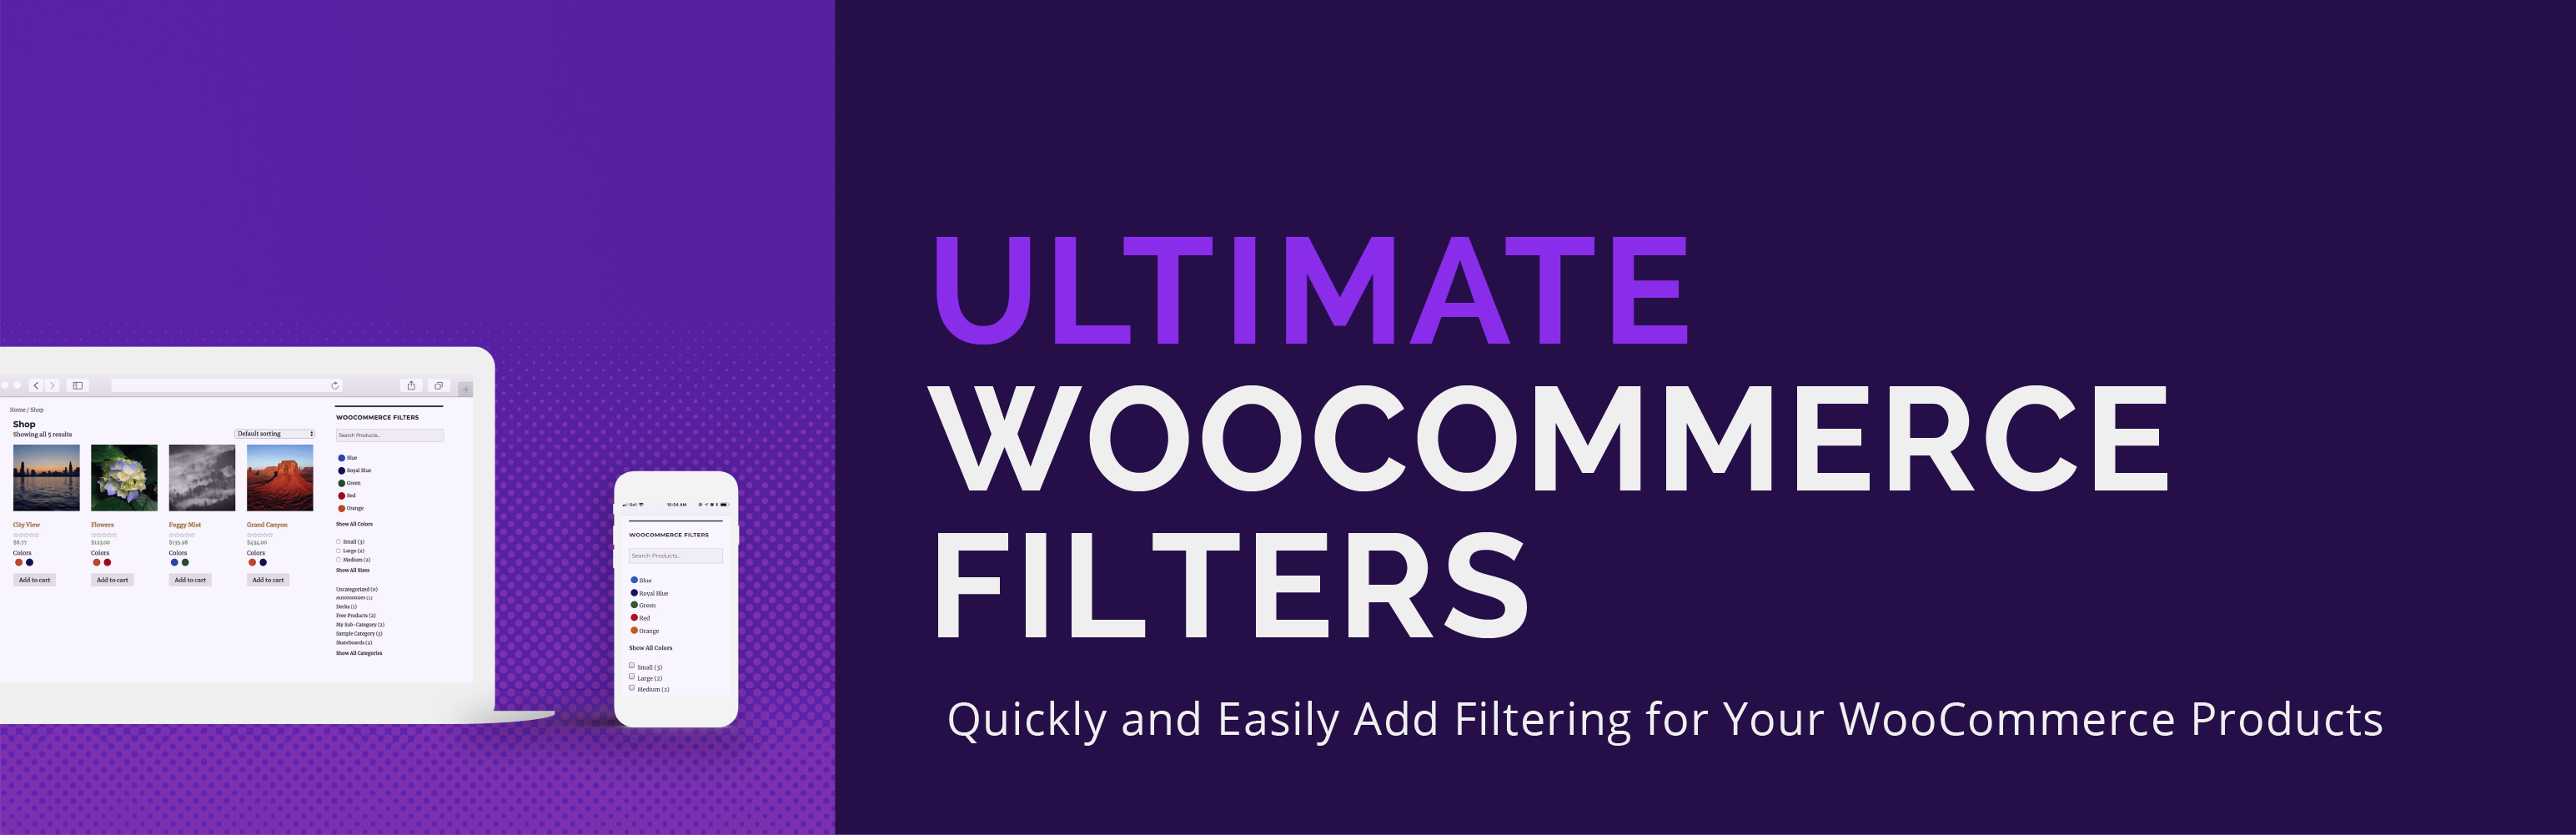 Ultimate WooCommerce Filters